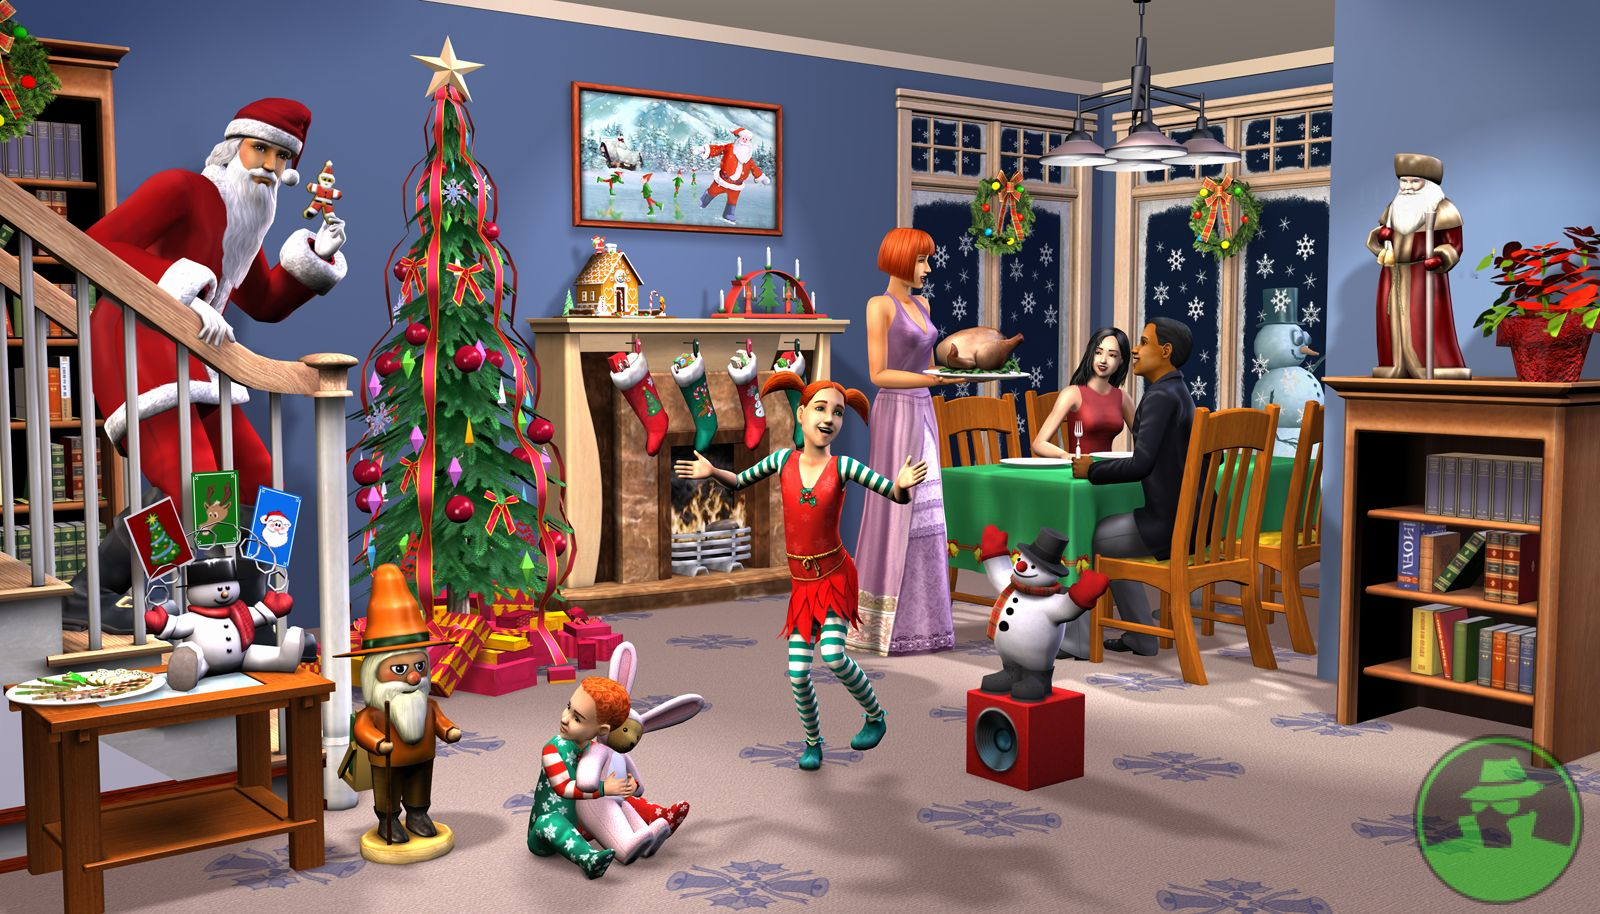 Sims 3 Christmas Tree.More Christmas Winter Sims Holiday For Sims 3 Sims 4 Sims